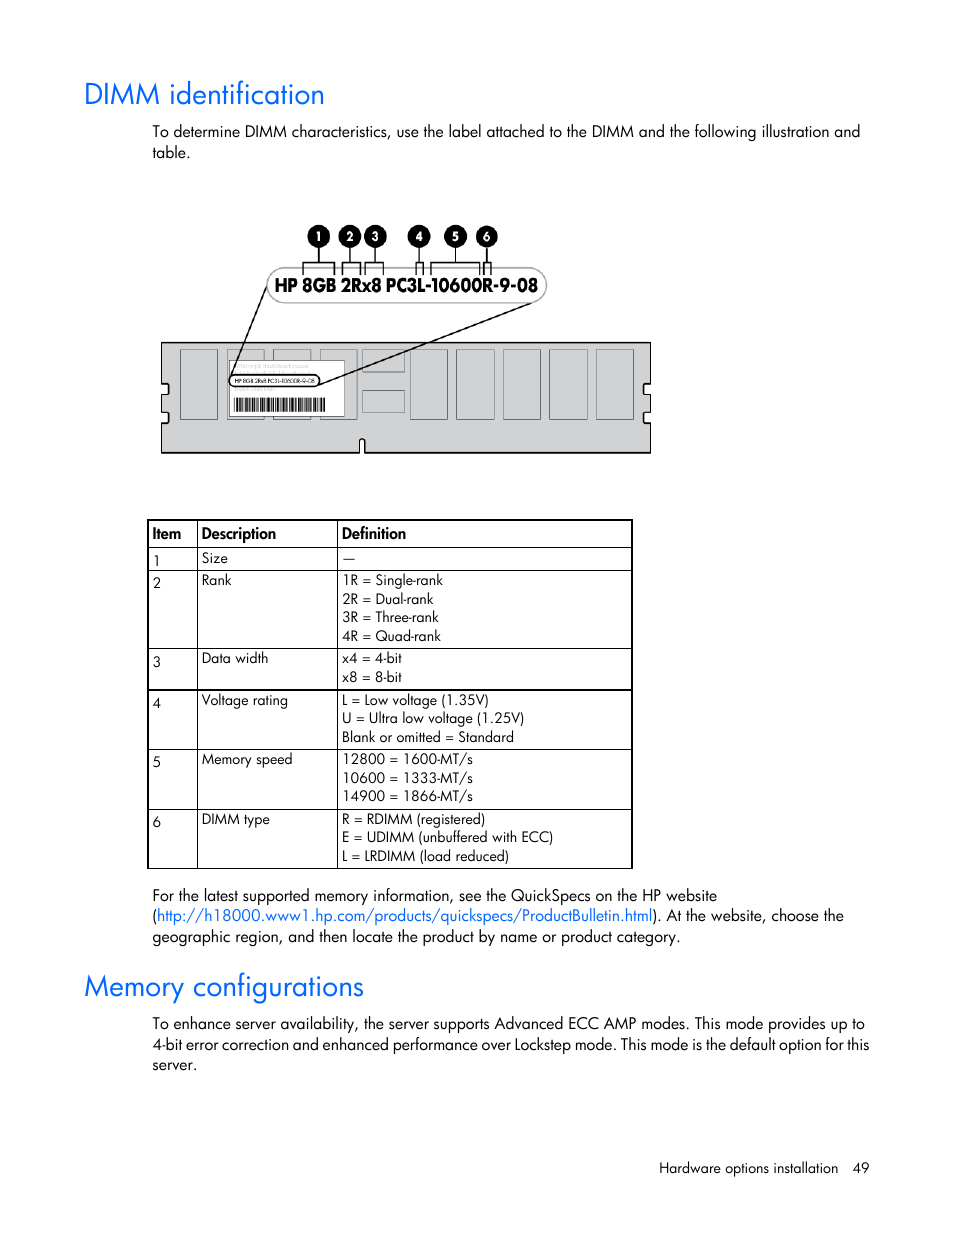 Dimm identification, Memory configurations | HP ProLiant